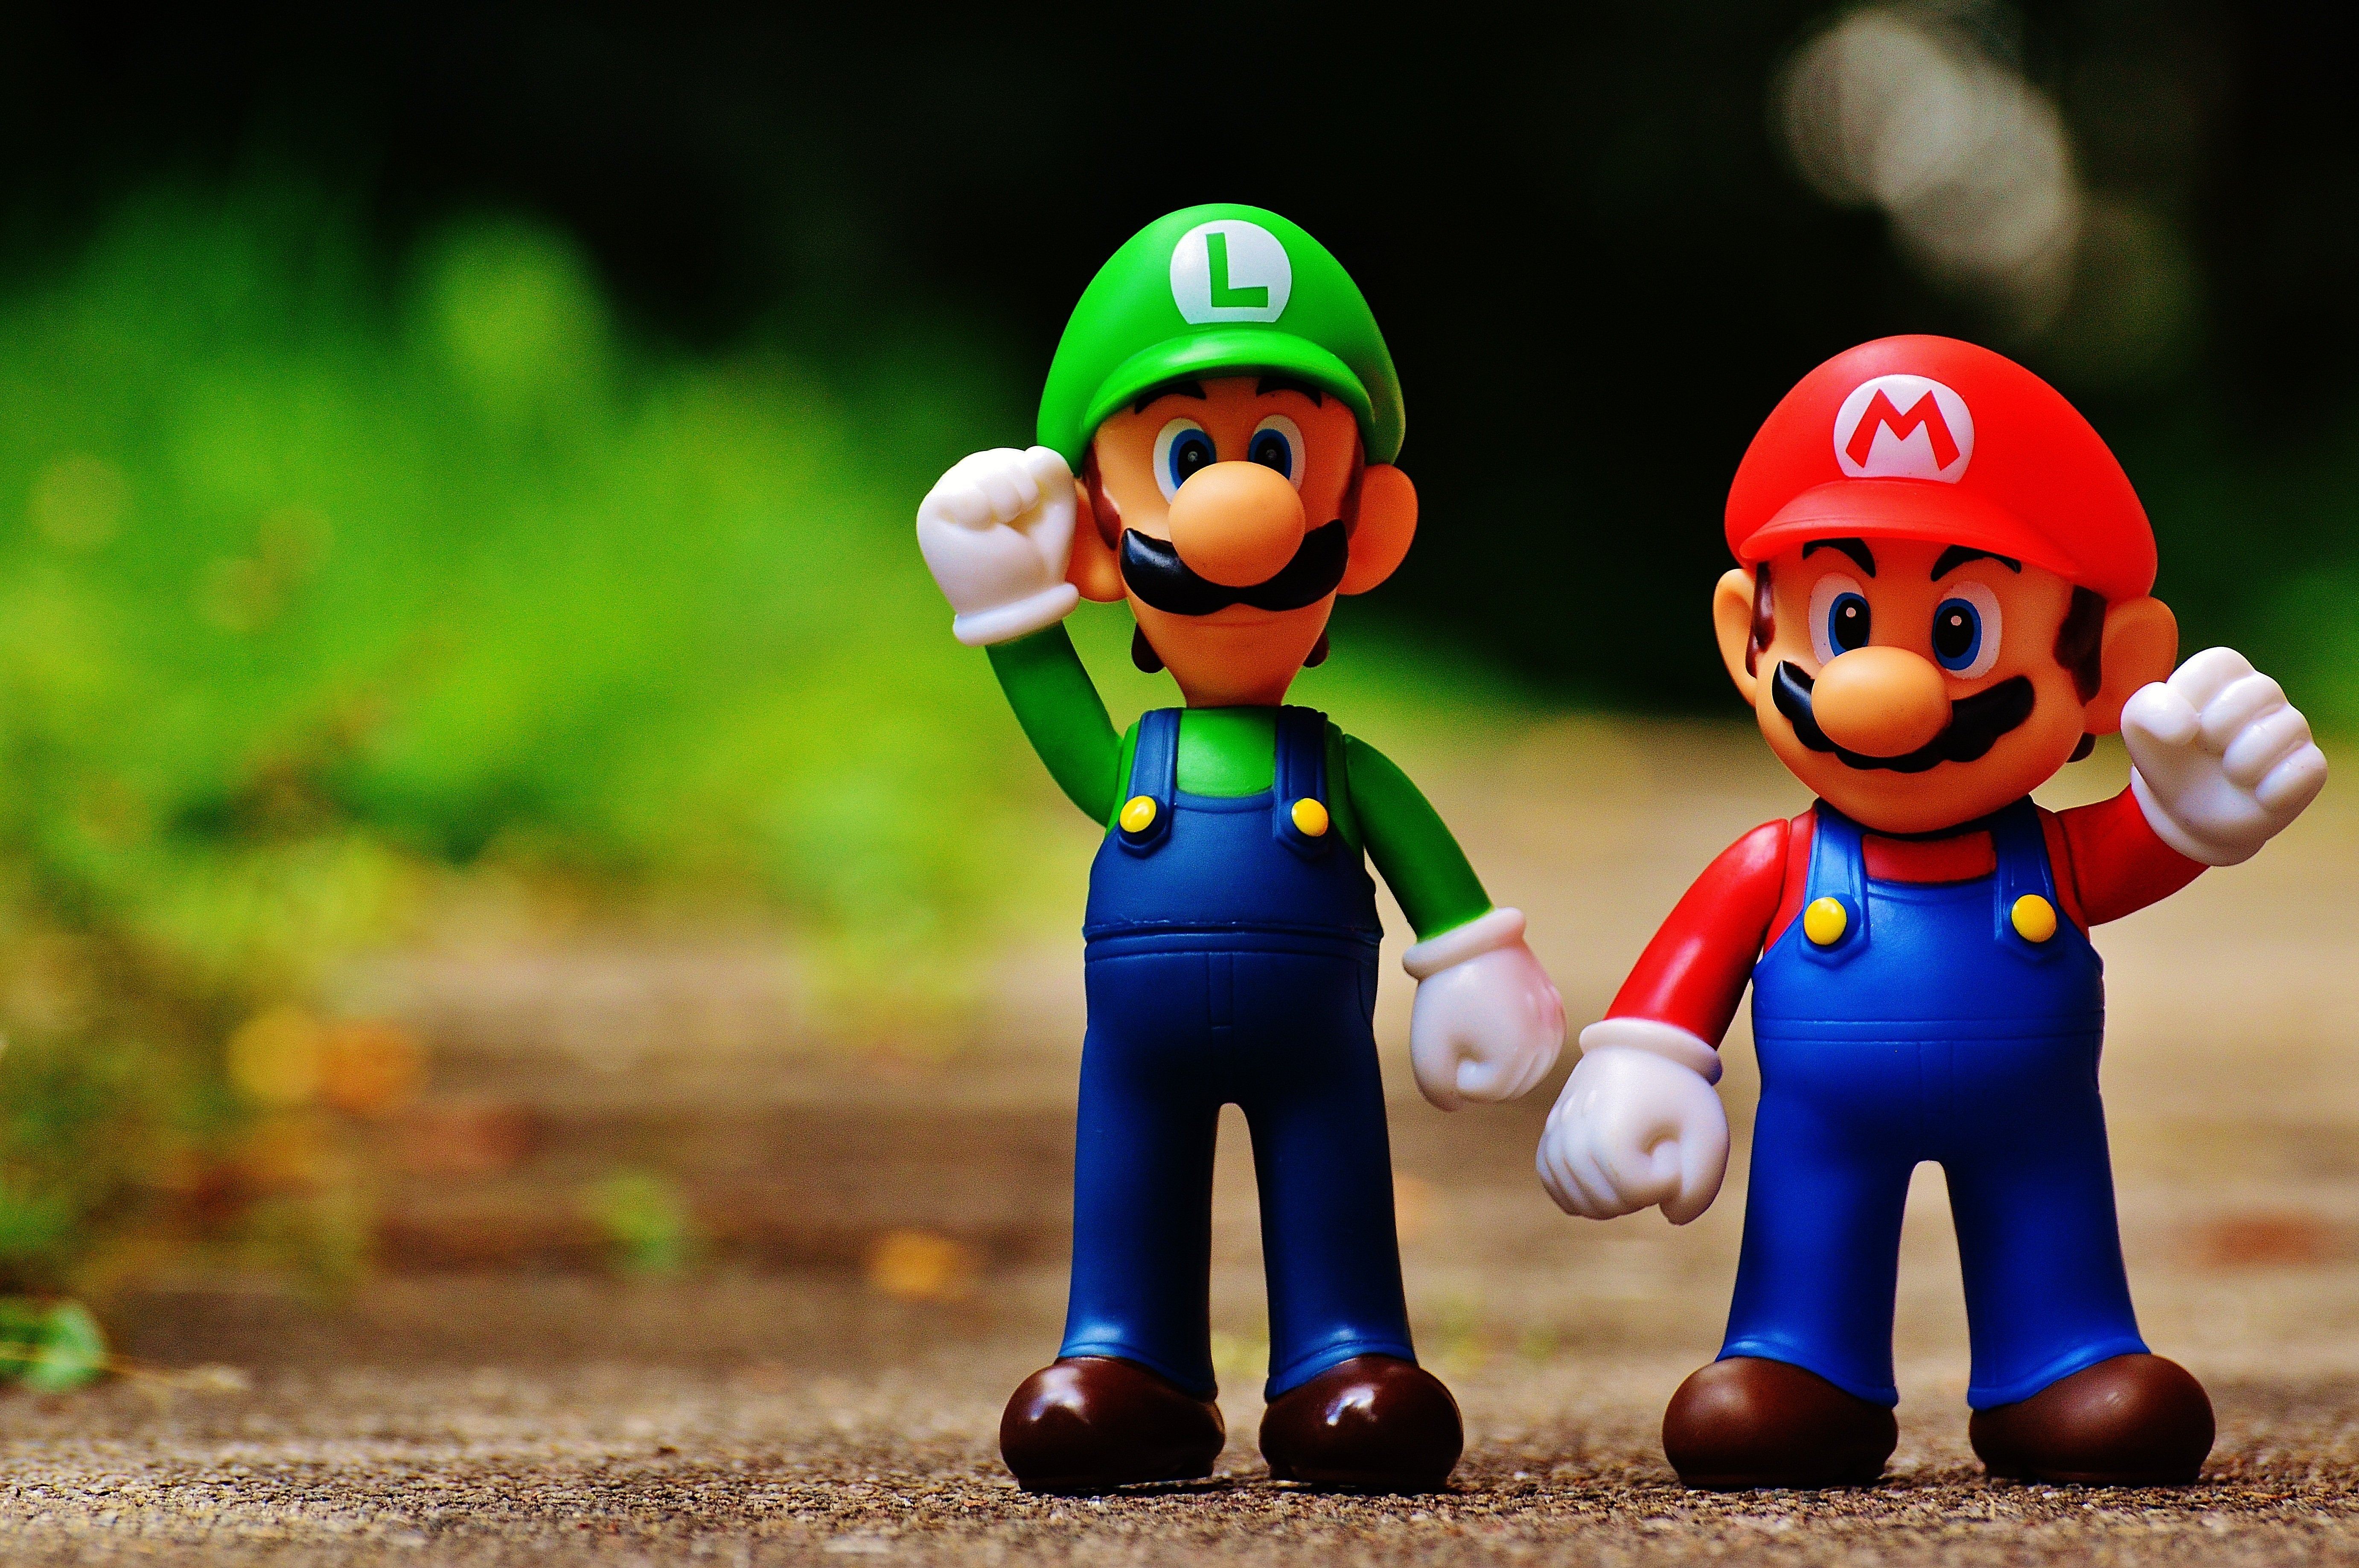 Nintendo is trying to crack down on people using virtually emulated retro games distributed online in a morally gray area of copyright law.